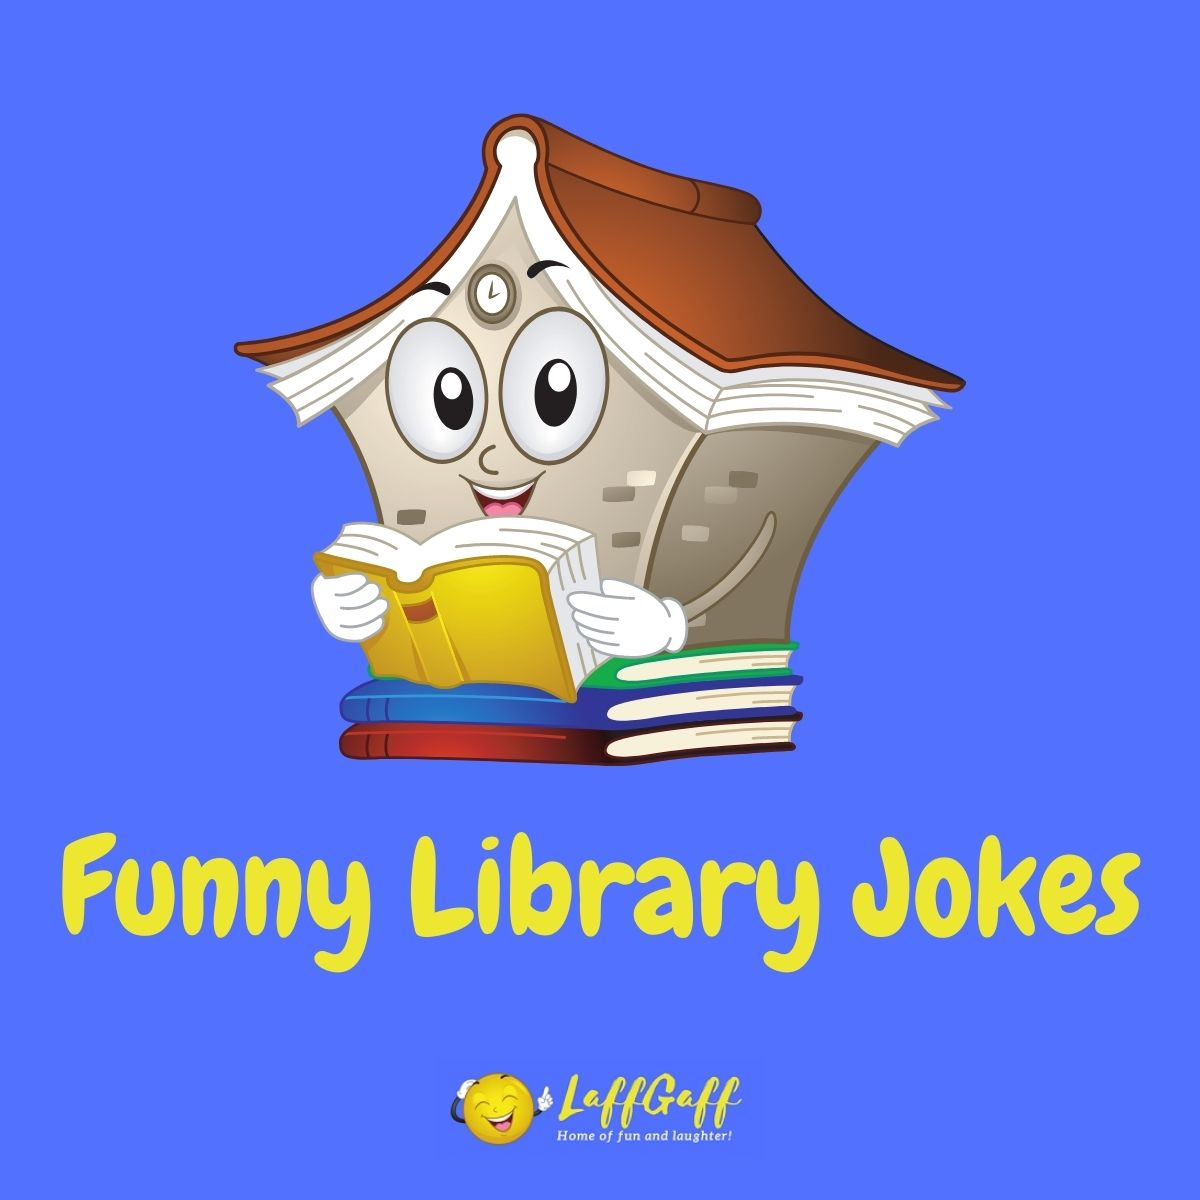 Featured image for a page of funny library jokes and puns.